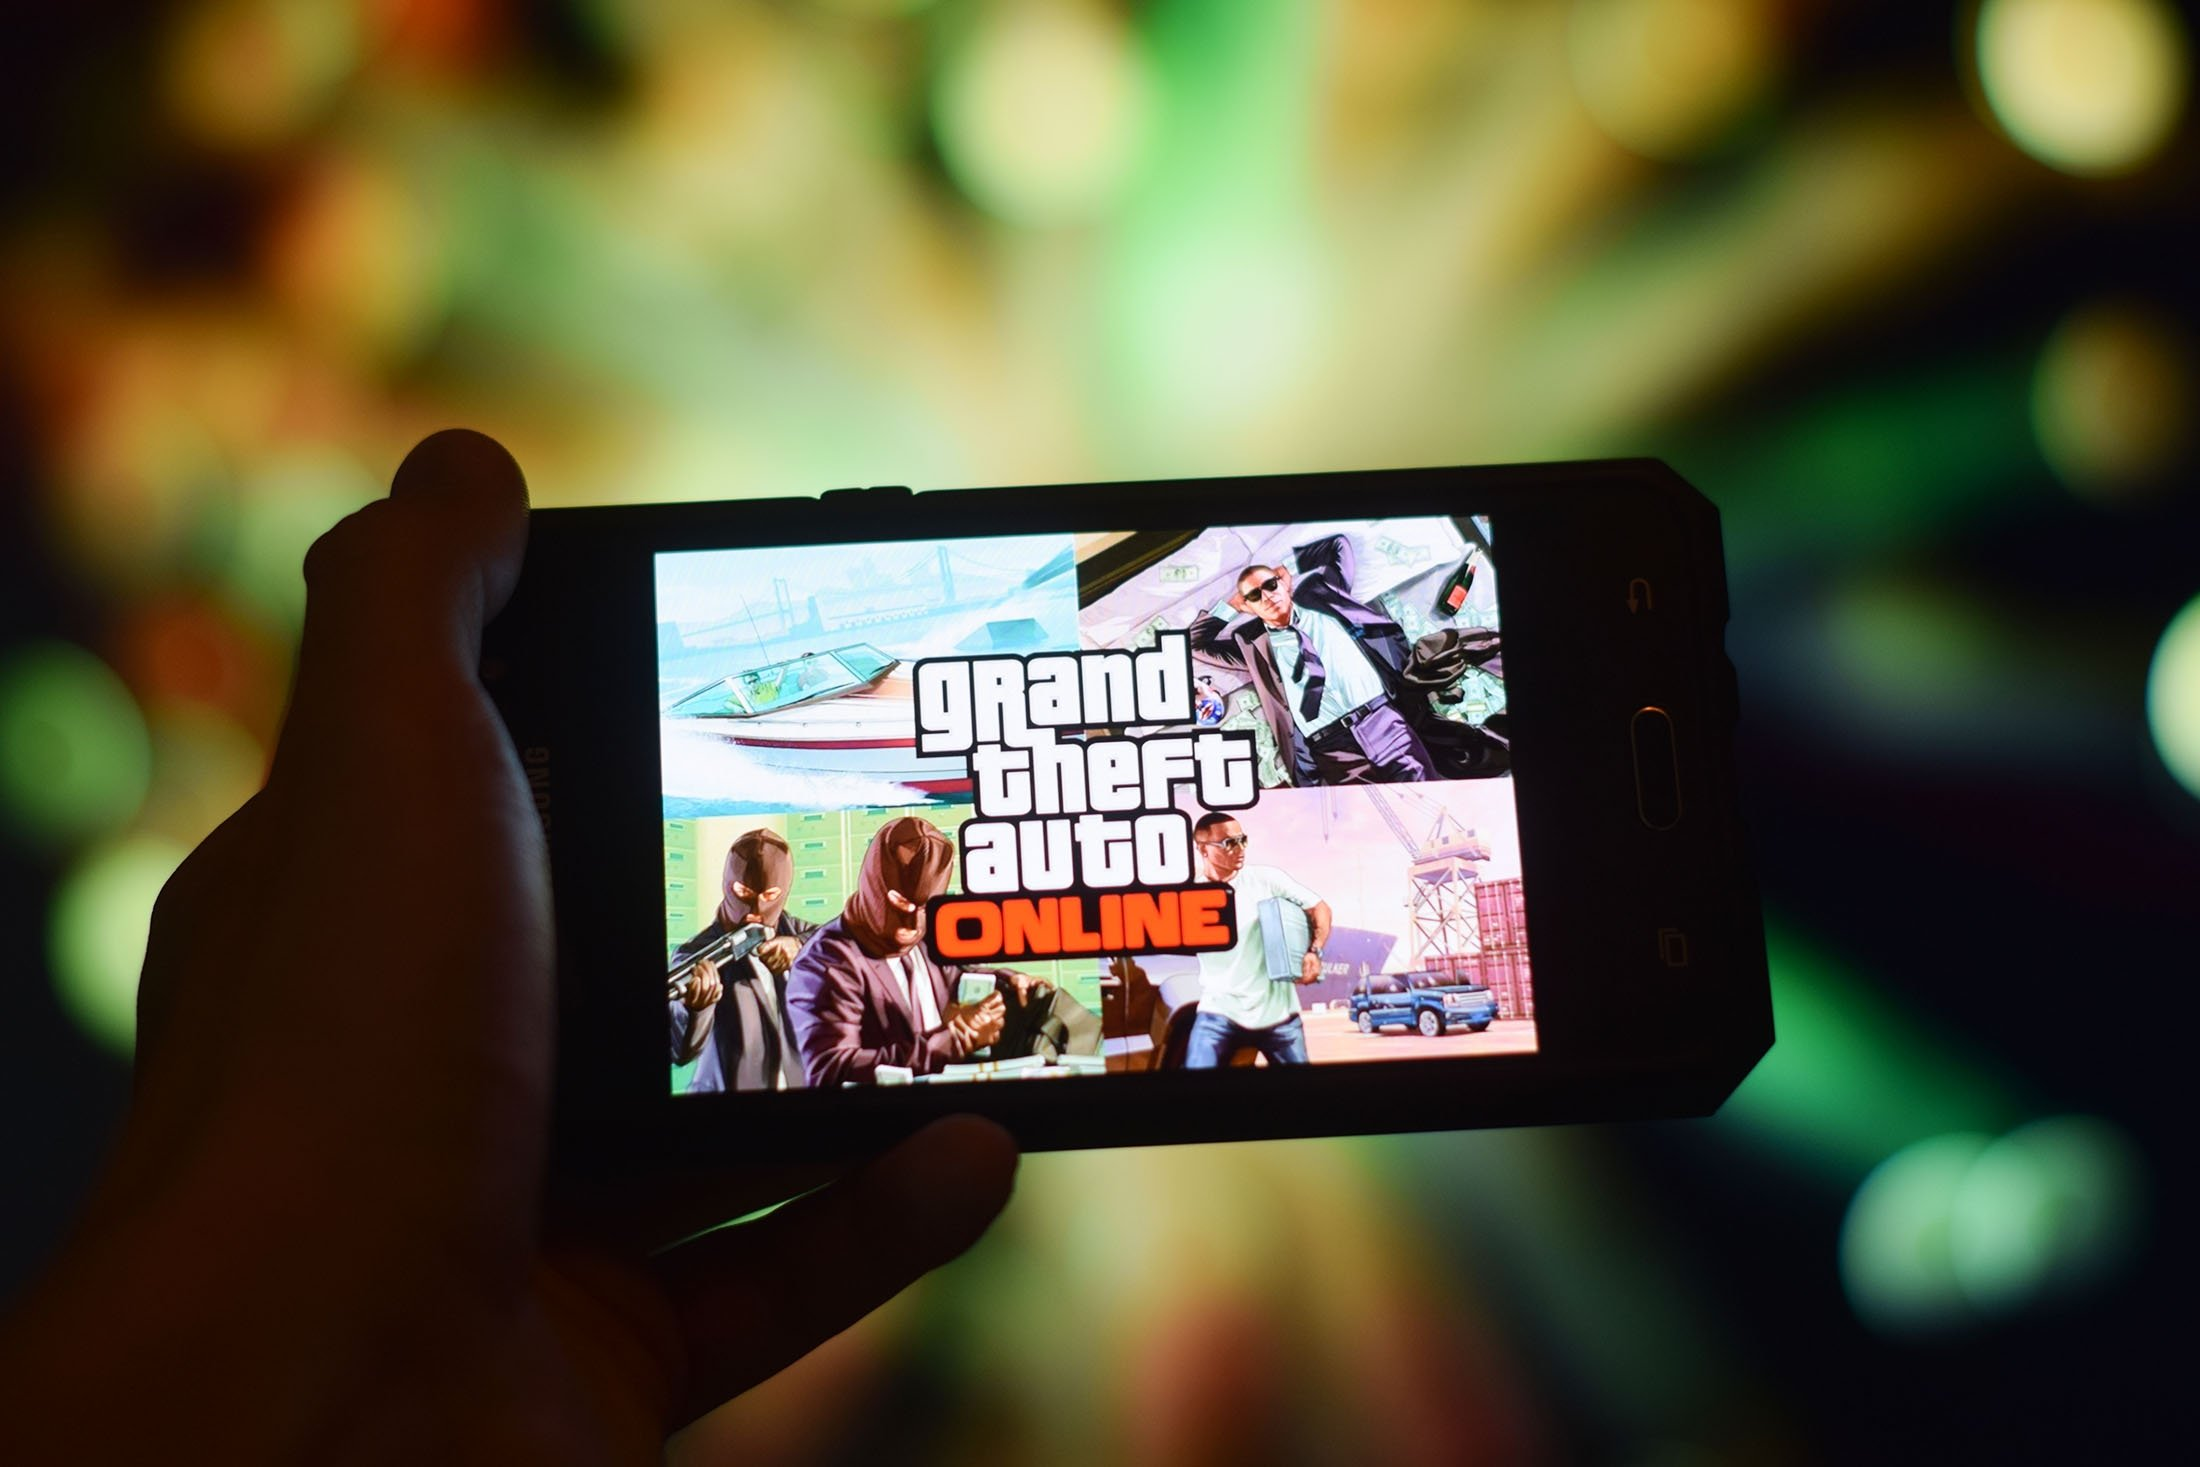 A close-up of Grand Theft Auto Online on a smartphone display, Kuala Lumpur, Malaysia, Dec. 25. 2019. (Shutterstock Photo)